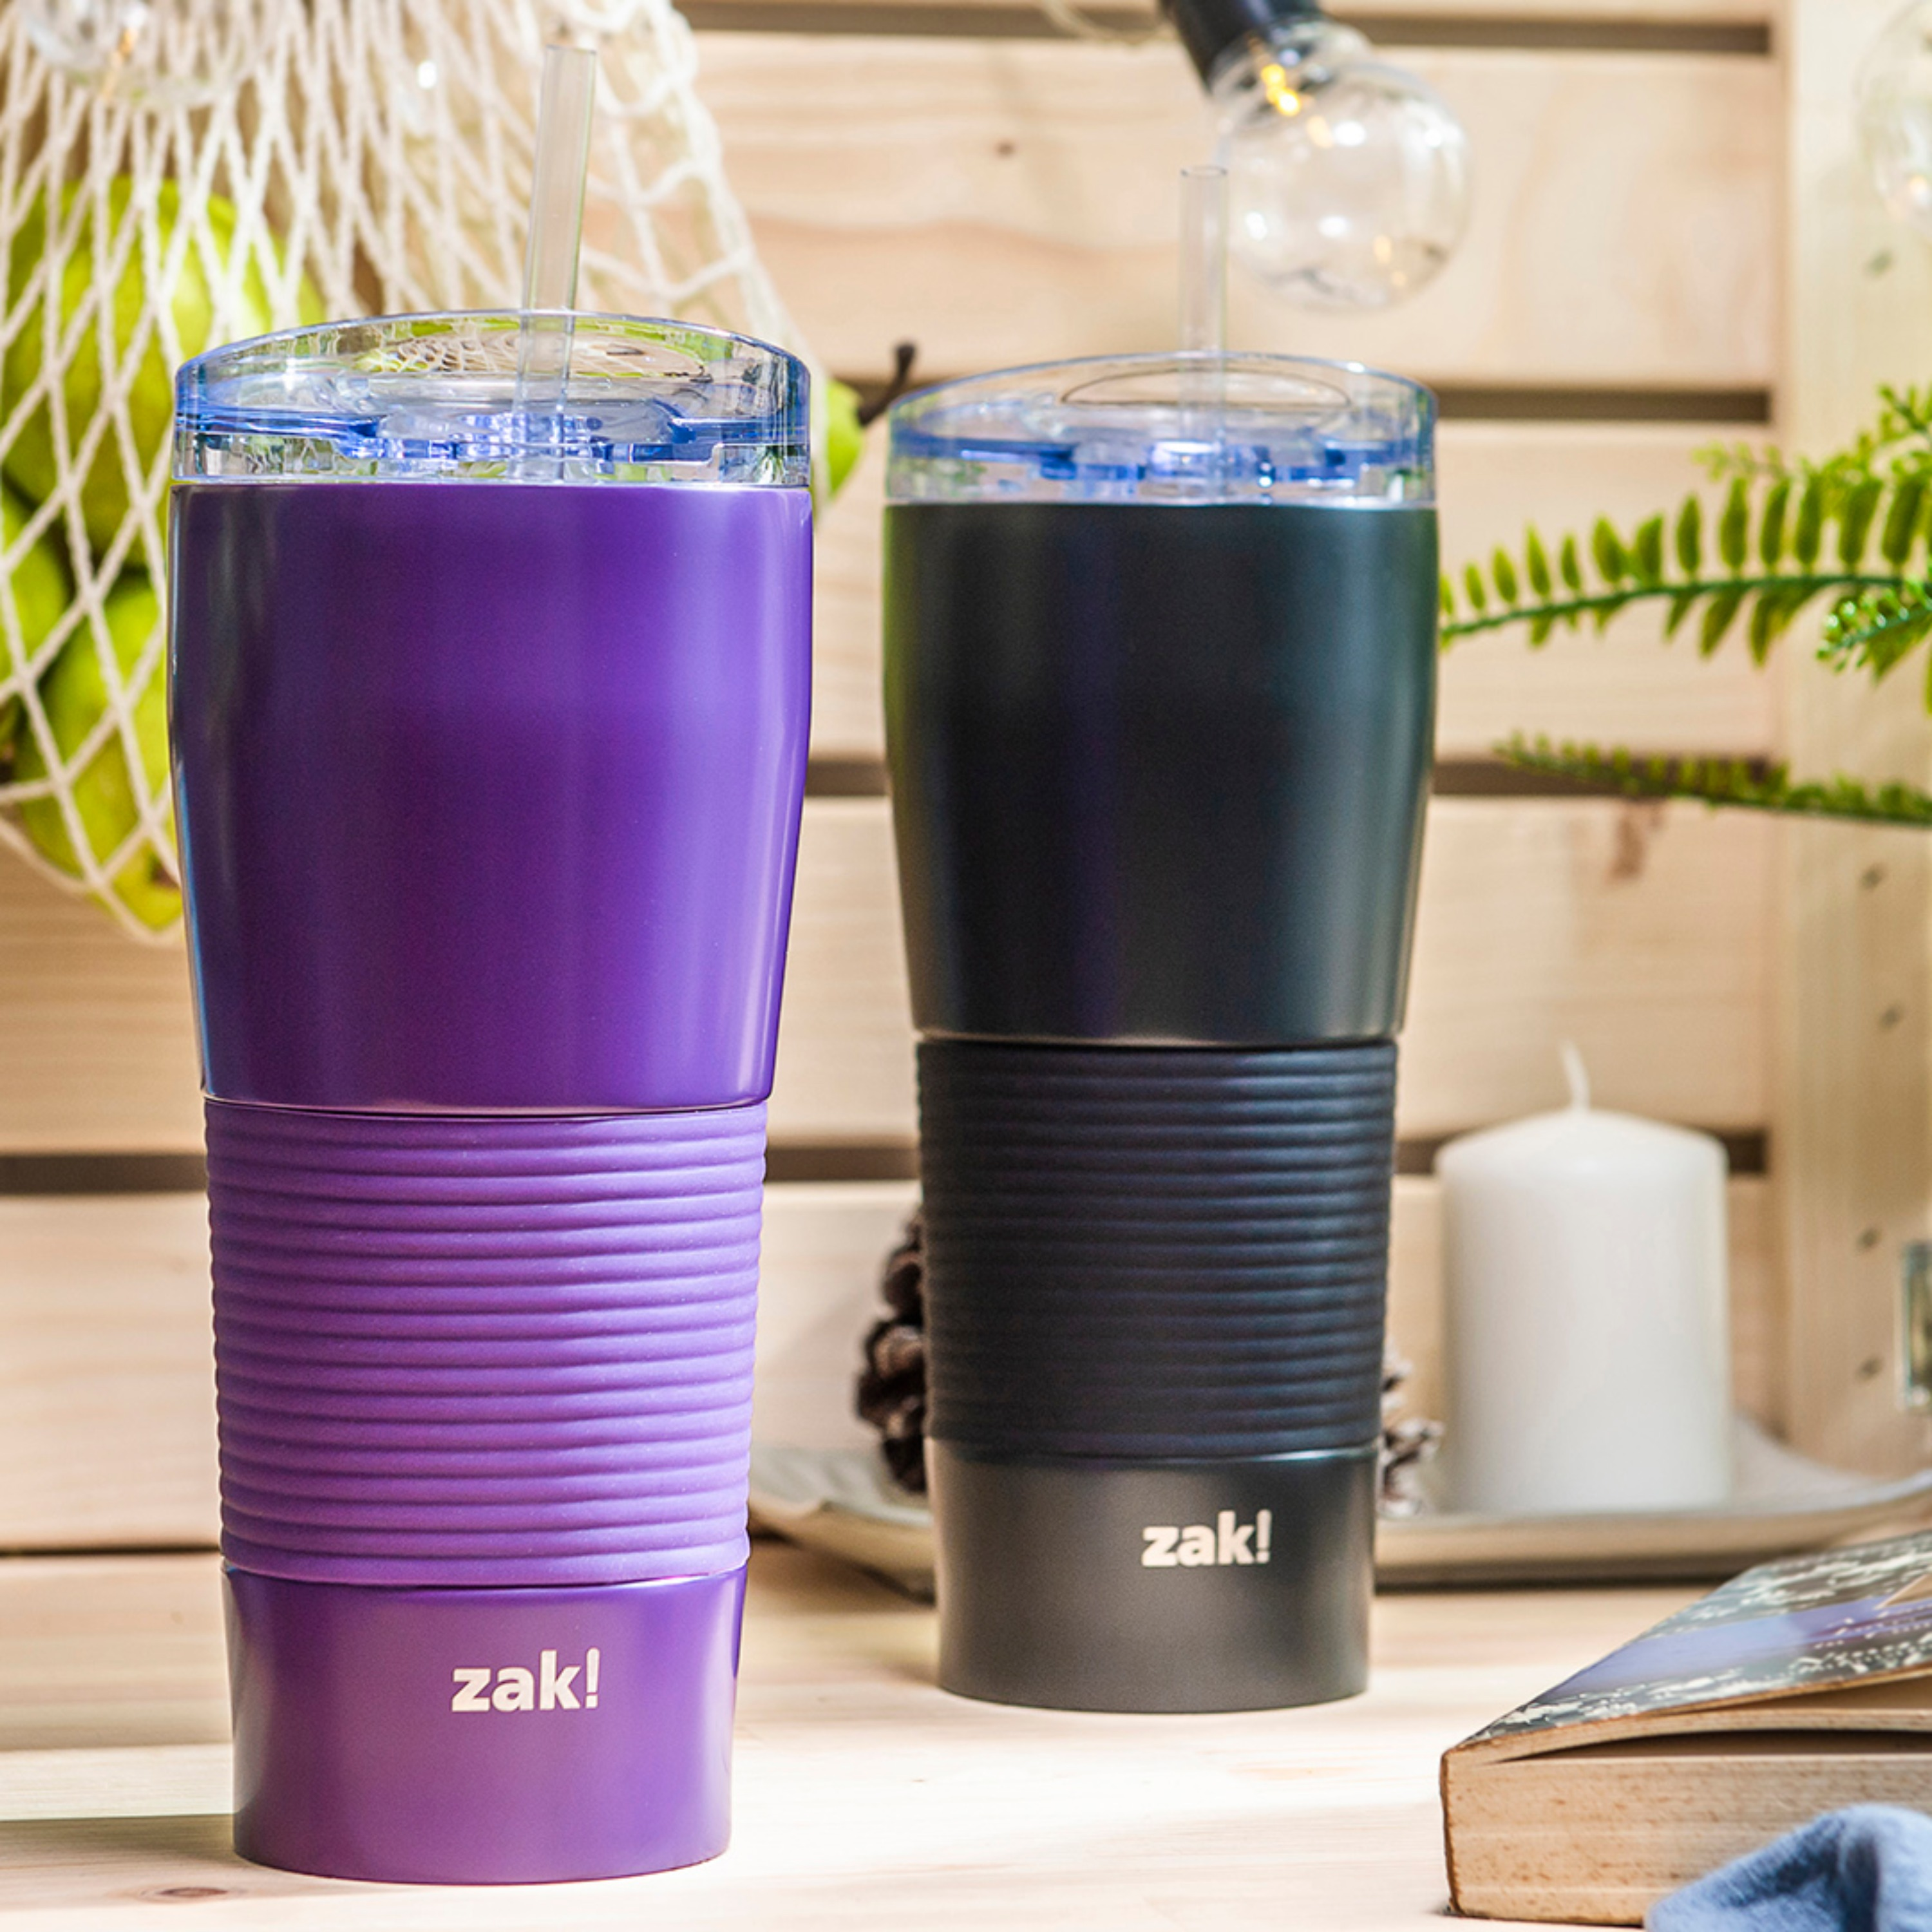 Lynden 28 ounce Stainless Steel Vacuum Insulated Tumbler with Straw, Viola slideshow image 2